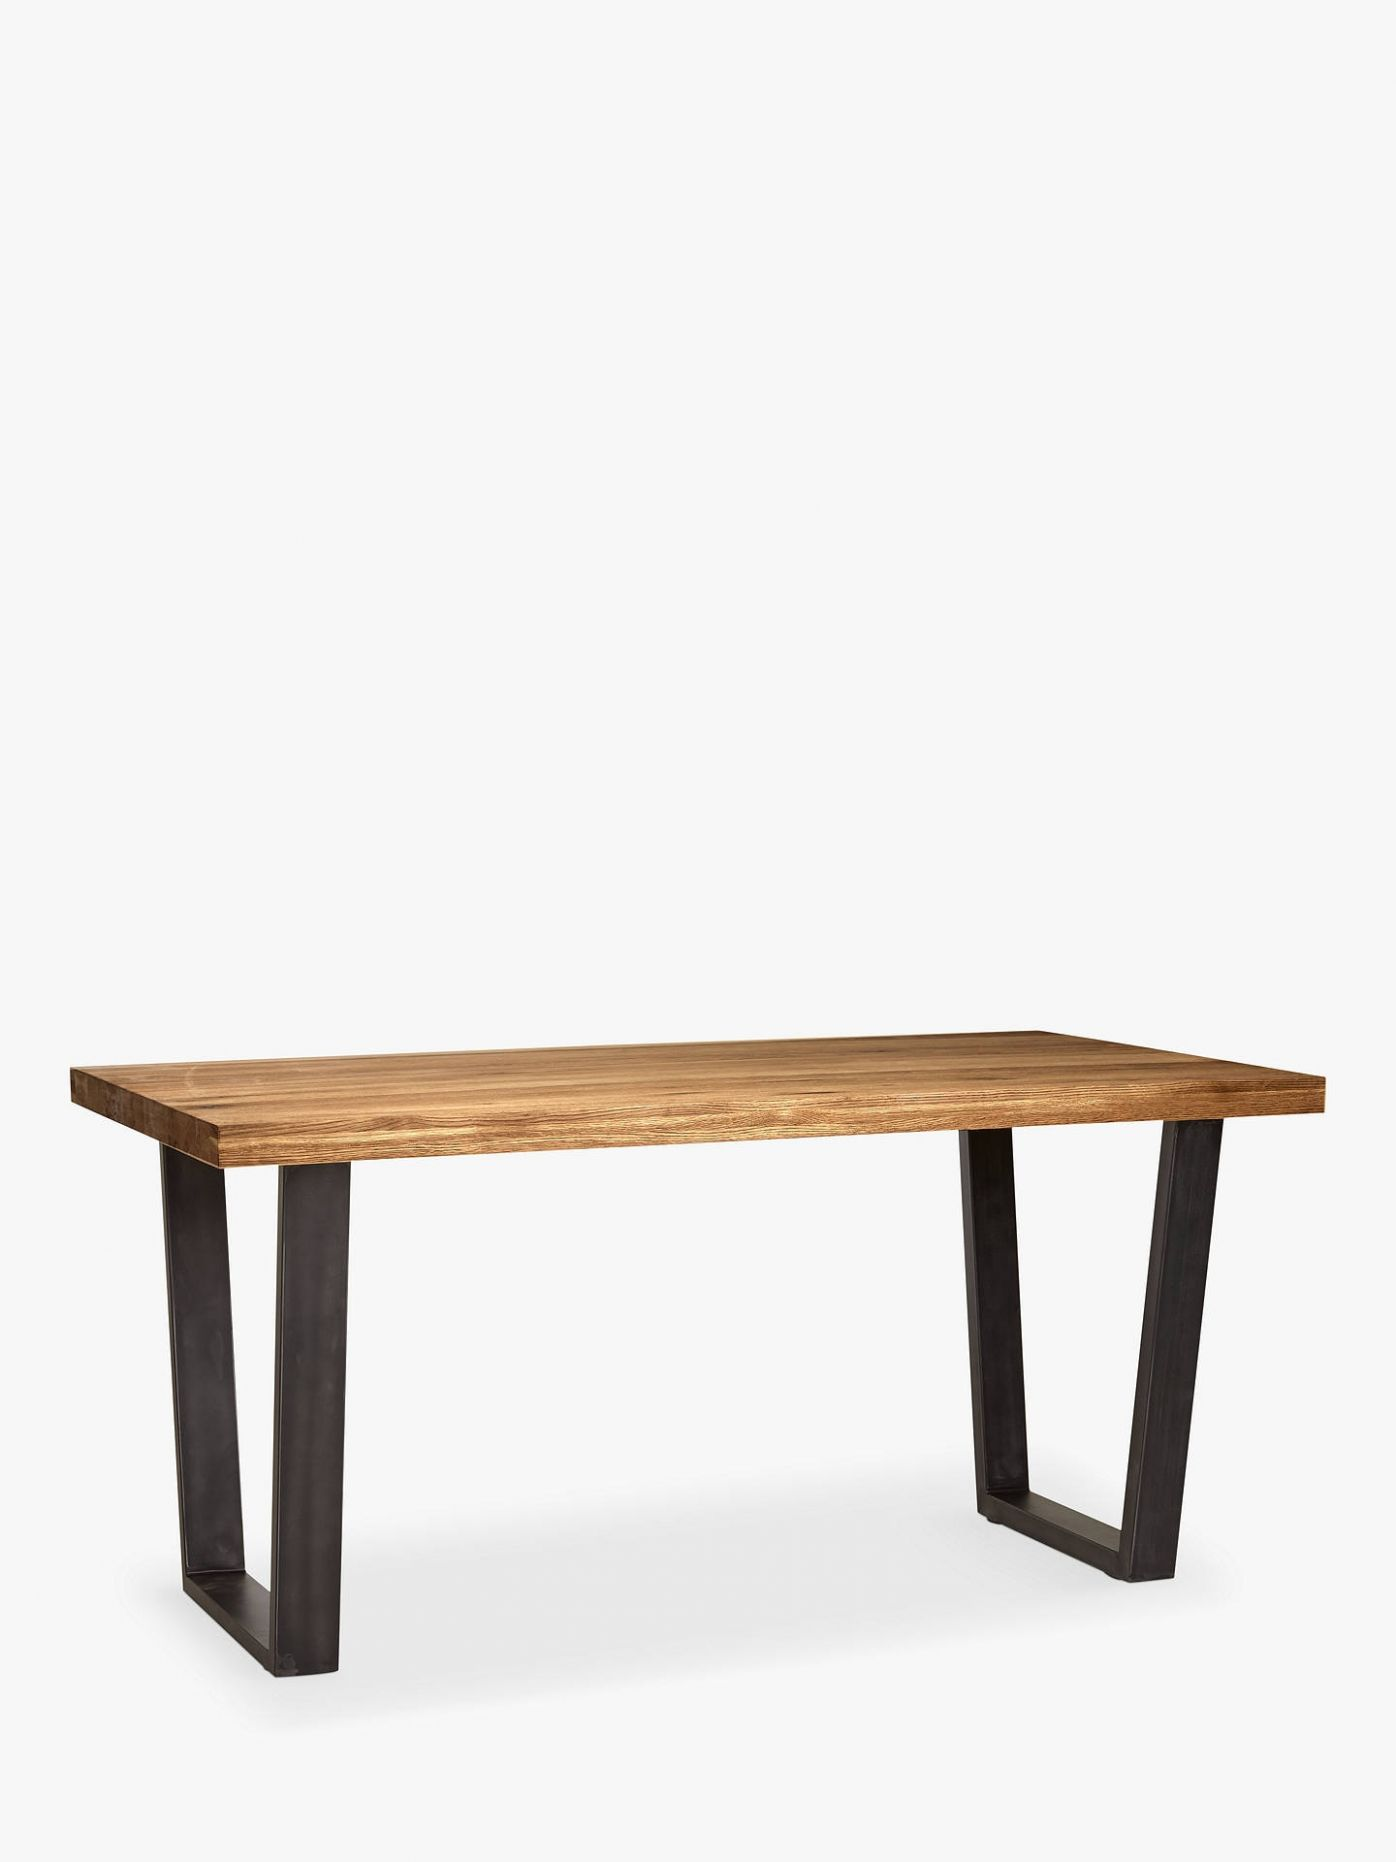 John Lewis & Partners Calia 12 Seater Dining Table, Oak